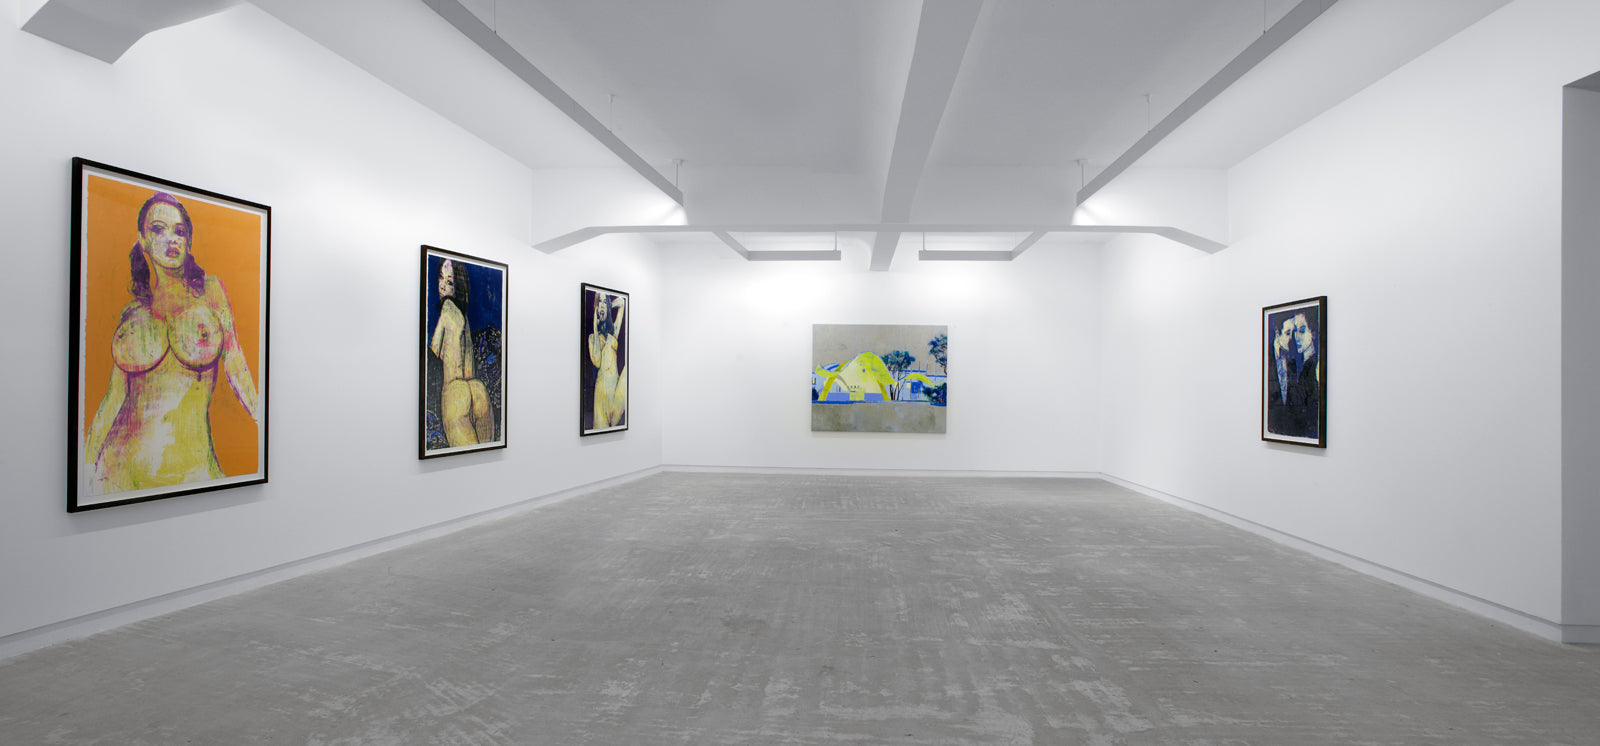 Enoc Perez, Tender, Installation view, 2008, Galerie Michael Janssen Berlin